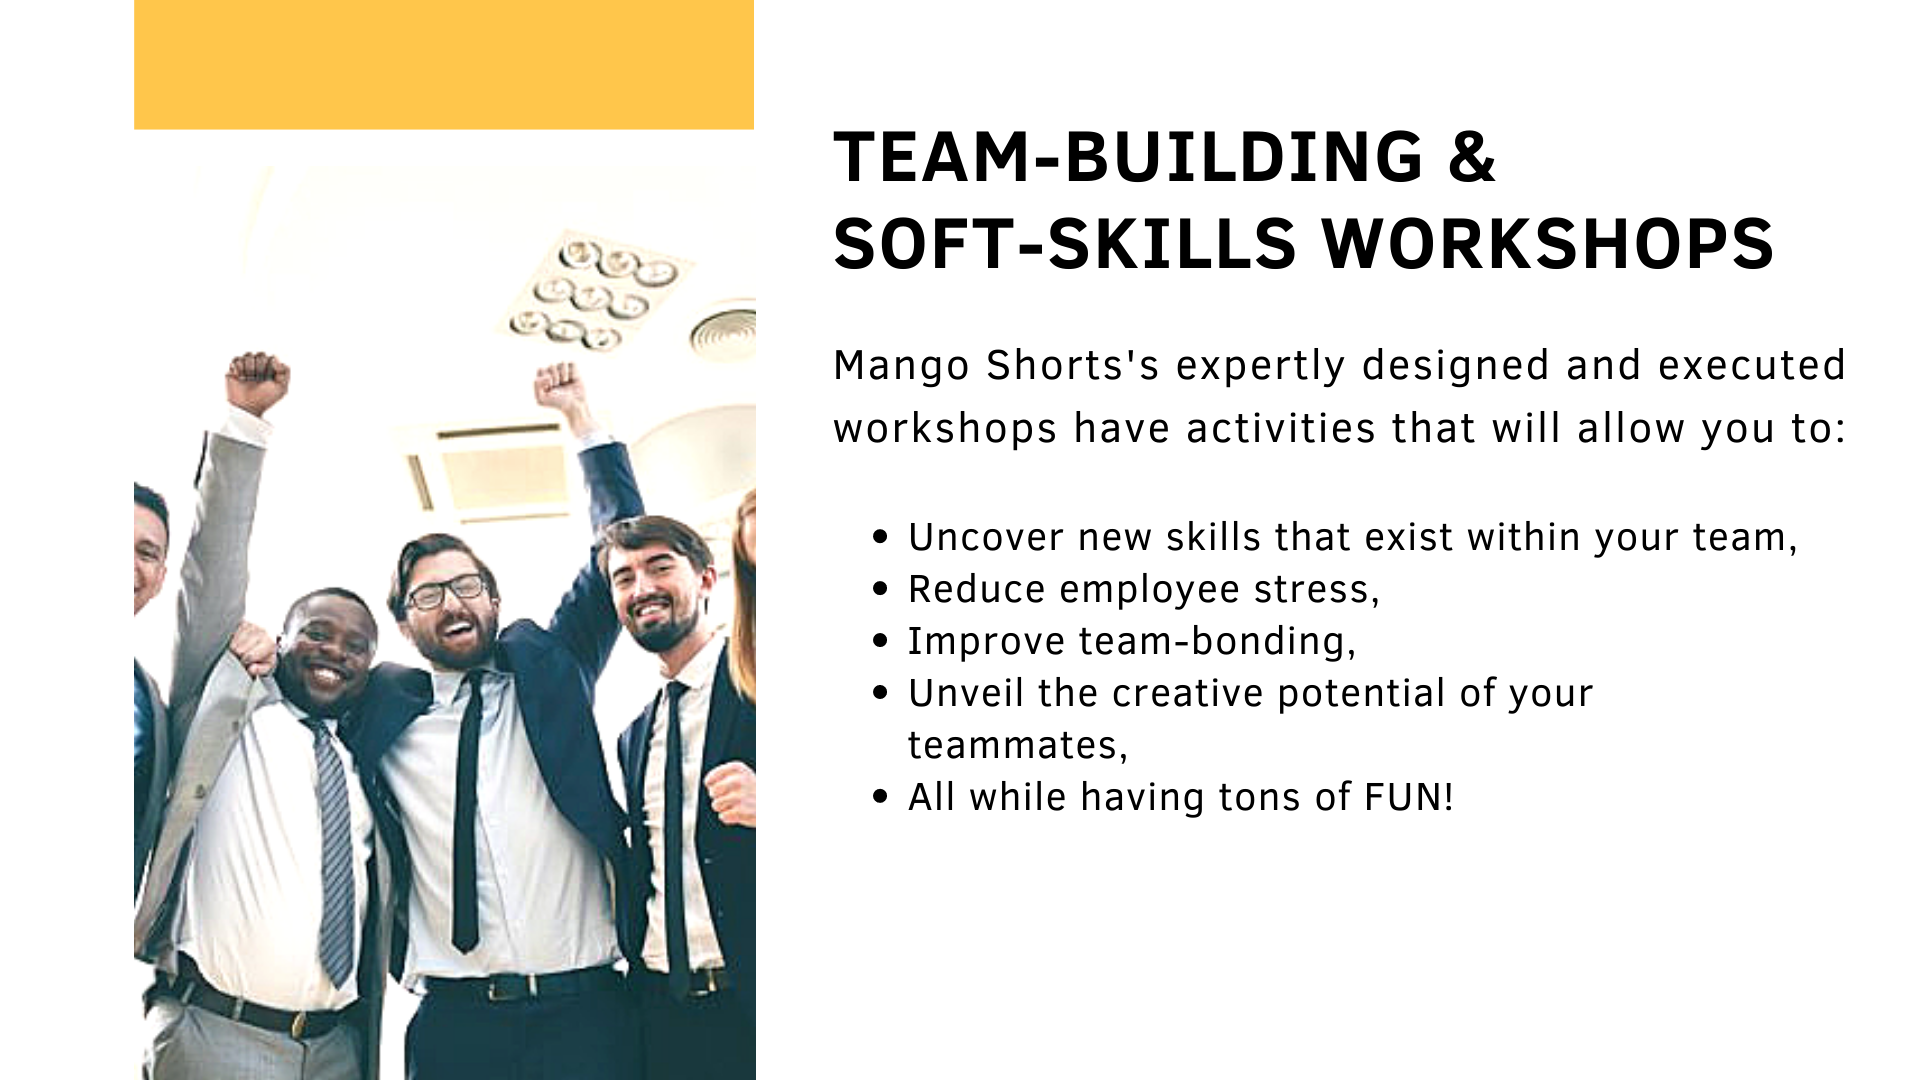 TEAM-BUILDING &  SOFT-SKILLS WORKSHOPS. Mango Shorts's expertly designed and executed workshops have activities that will allow you to: Uncover new skills that exist within your team,  Reduce employee stress,  Improve team-bonding,  Unveil the creative potential of your teammates, All while having tons of FUN!